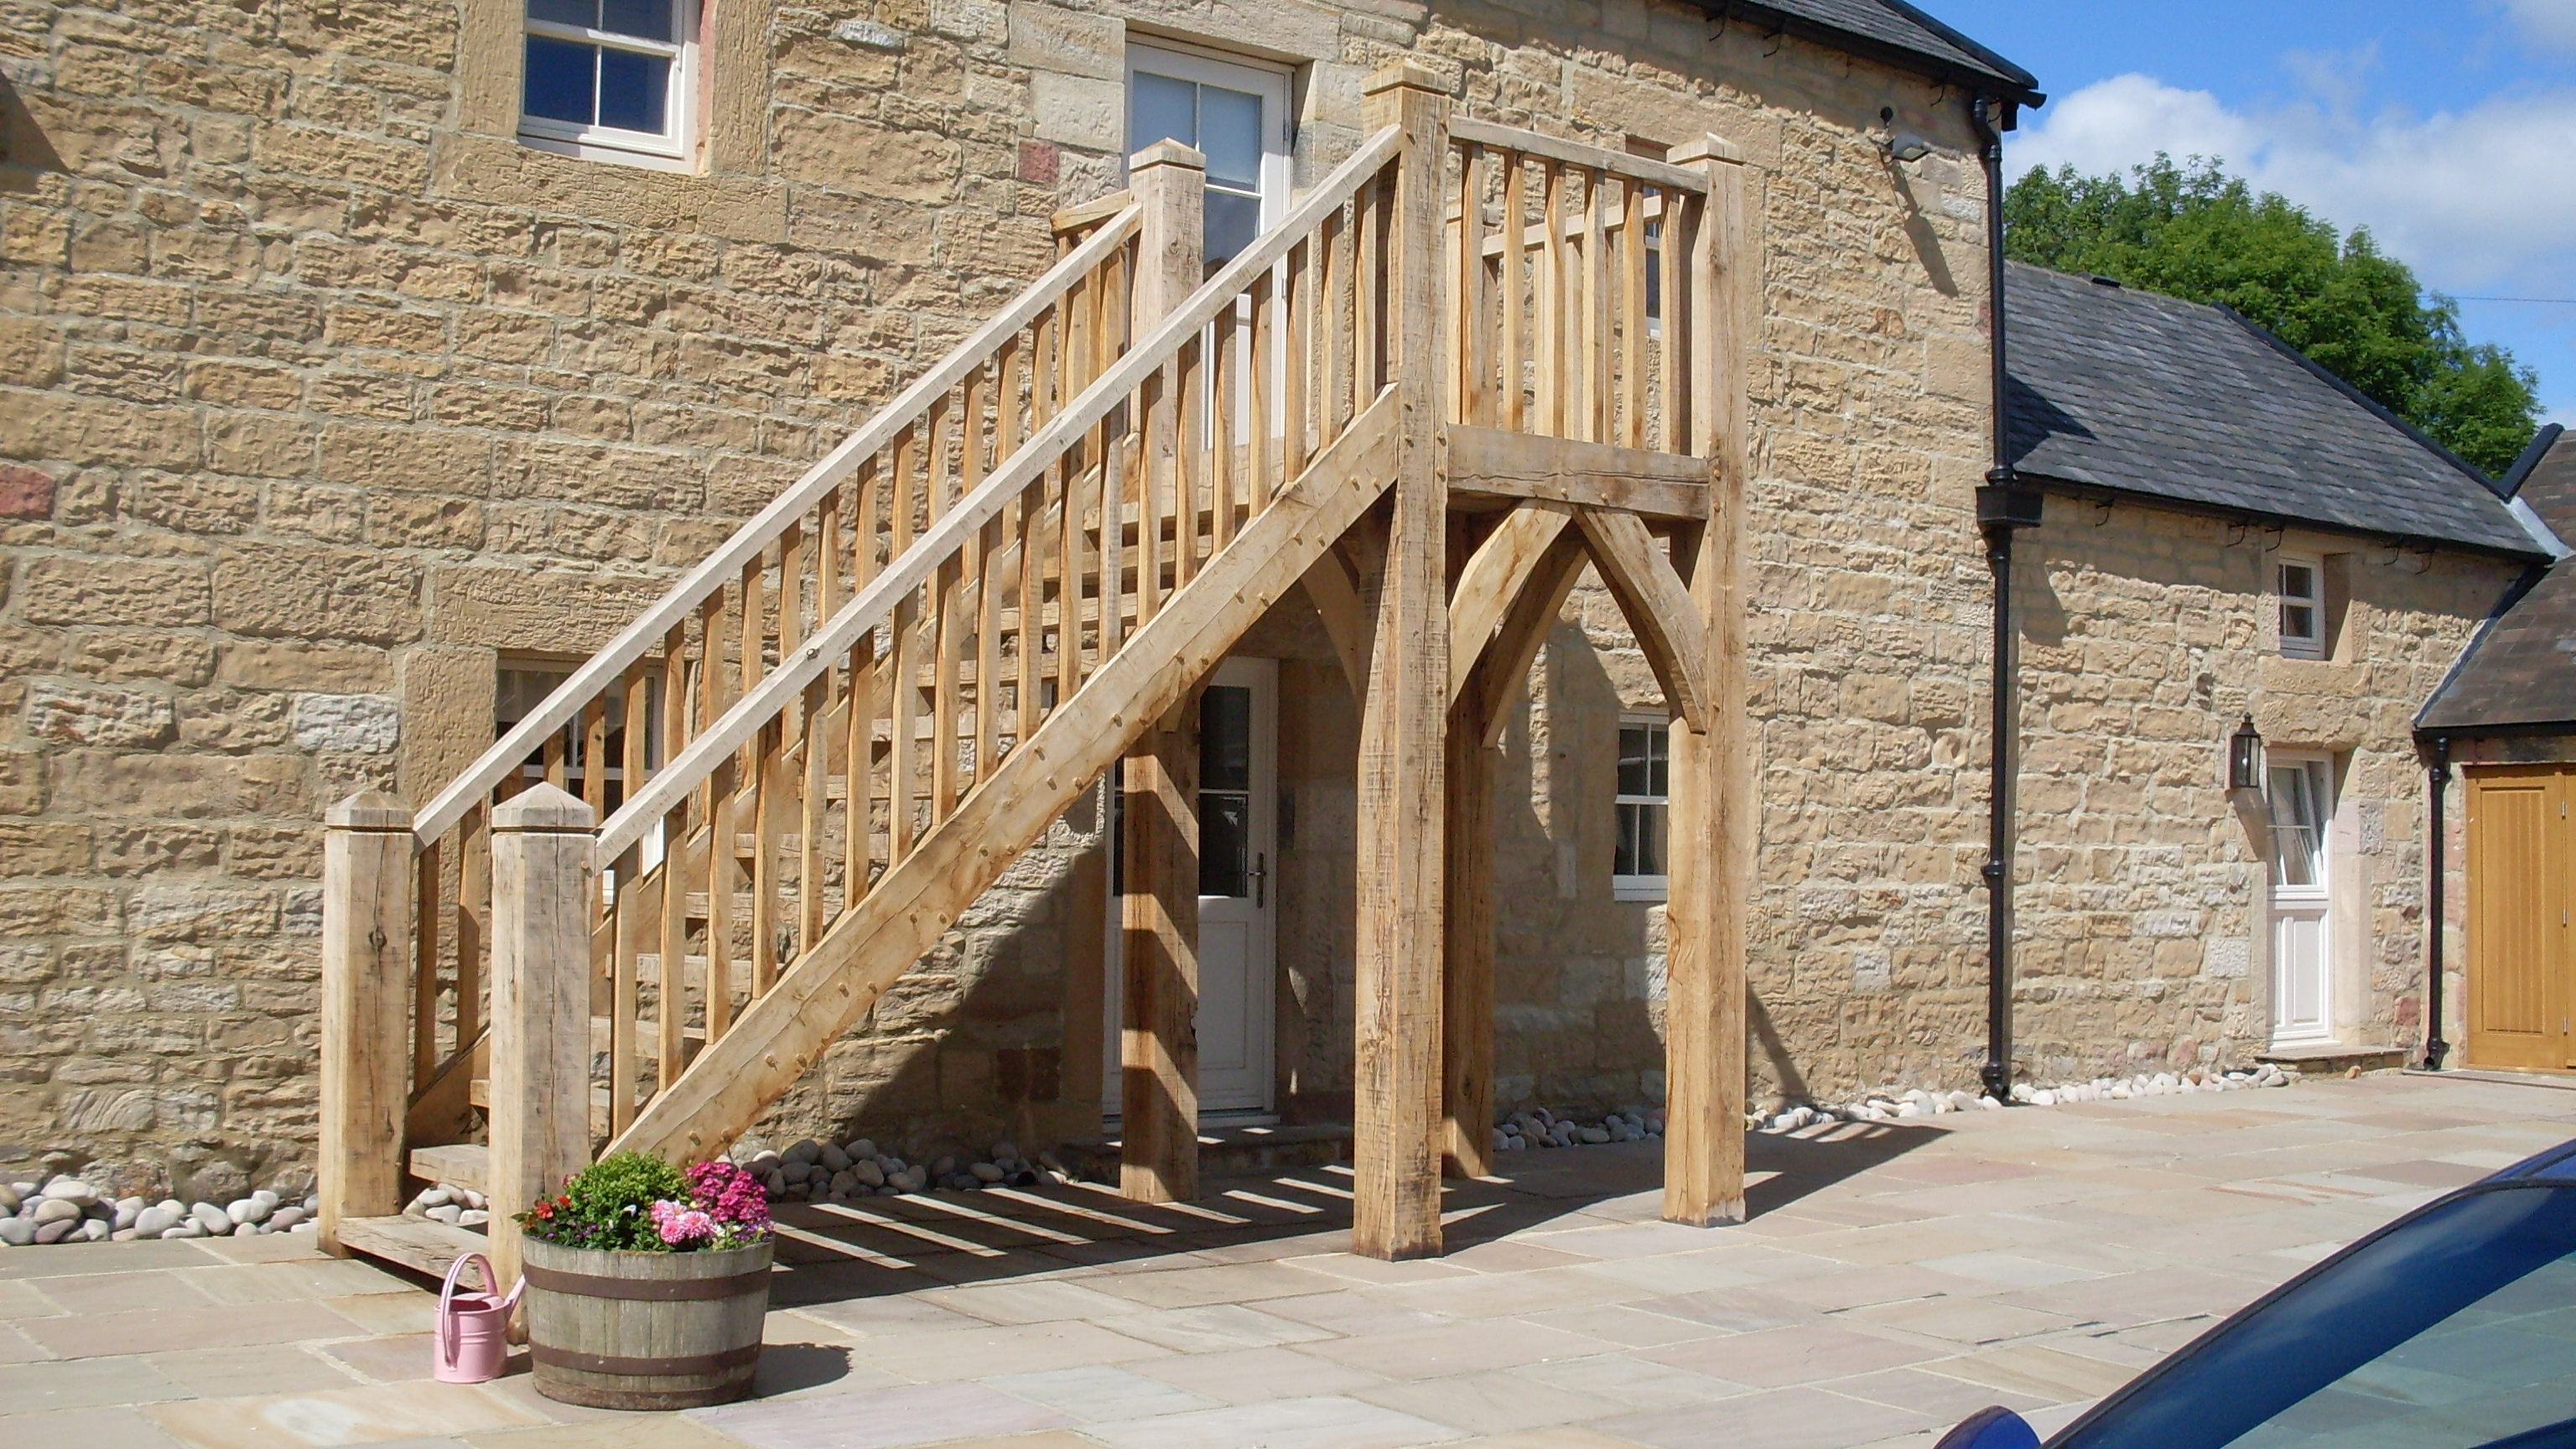 Rustic External Staircase And Porches Tradoak Case Study